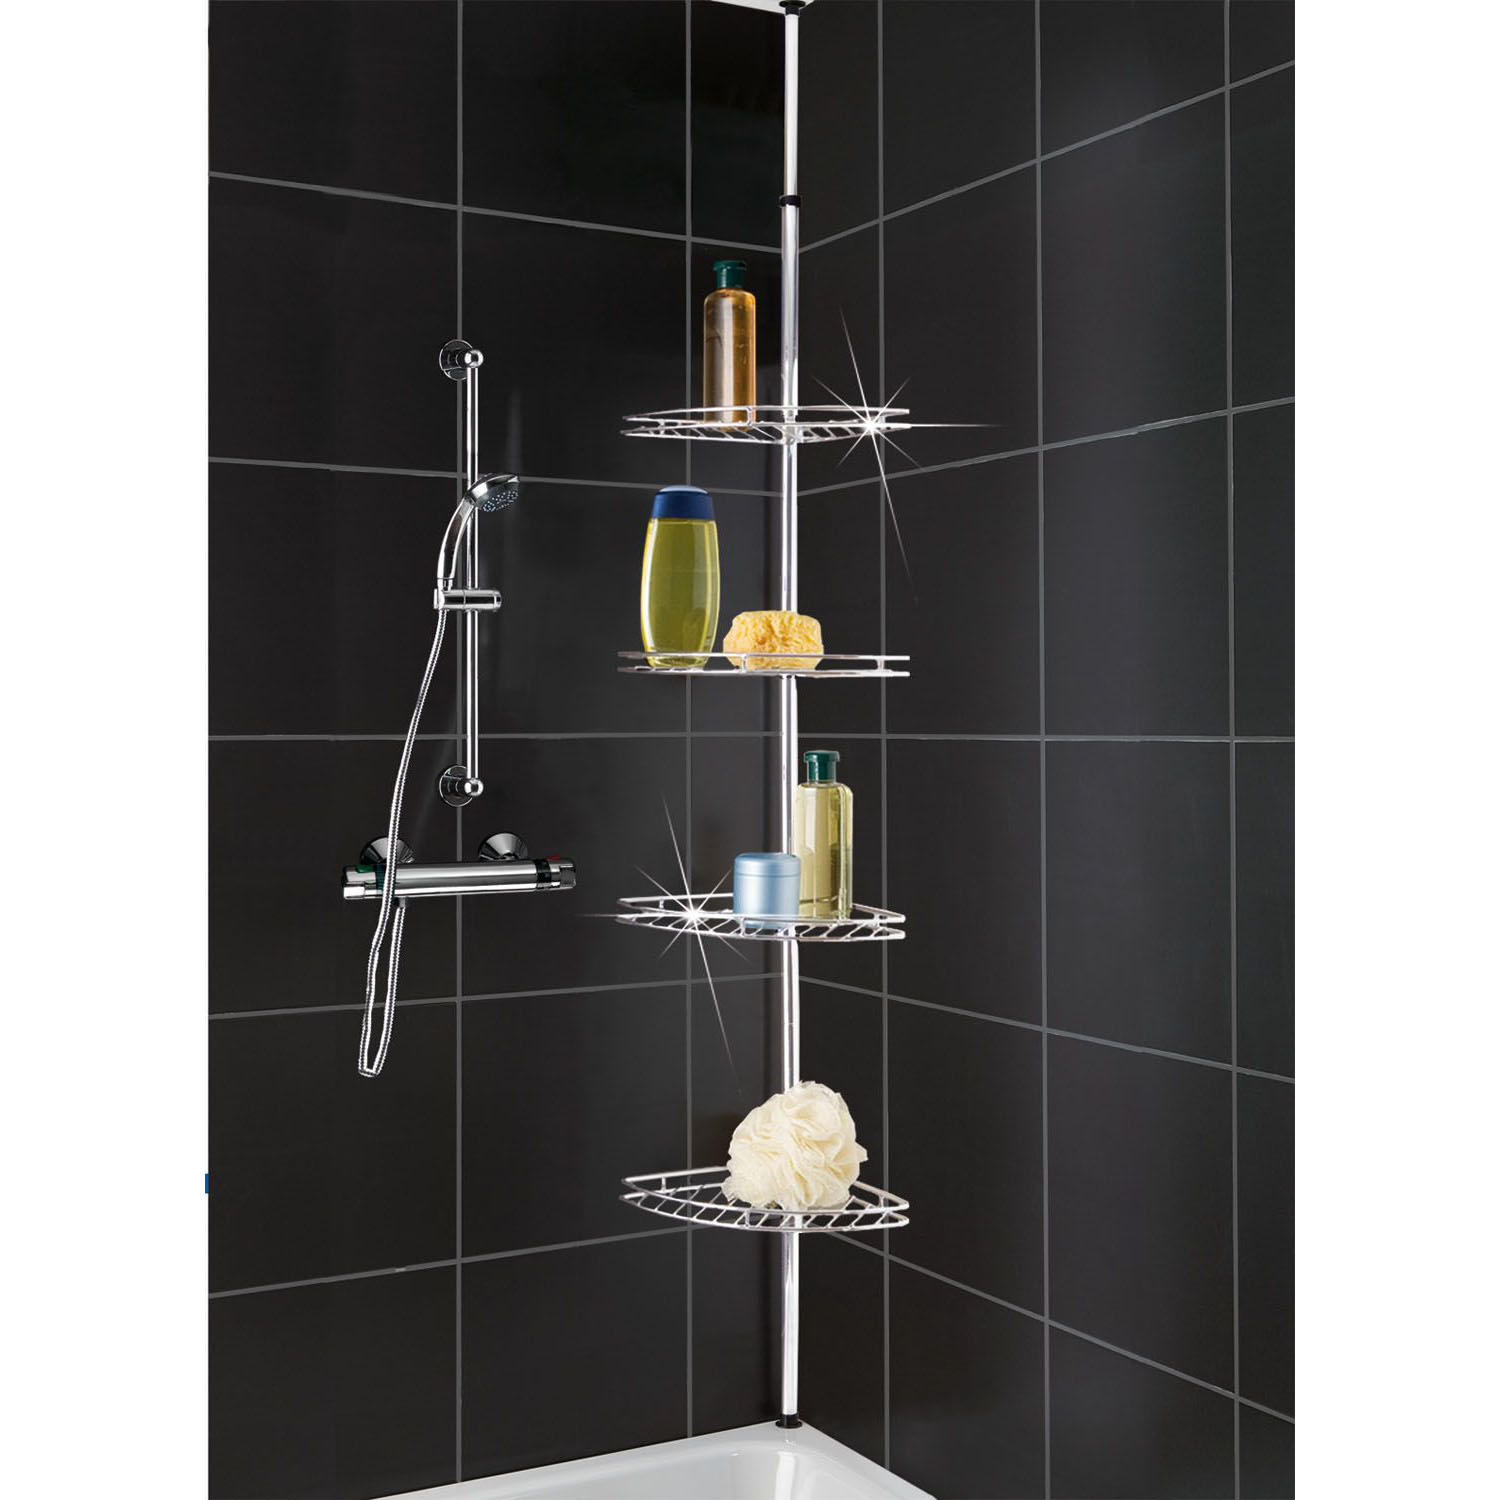 Eckregal Dusche Chrom : Metal Shower Corner Shelves